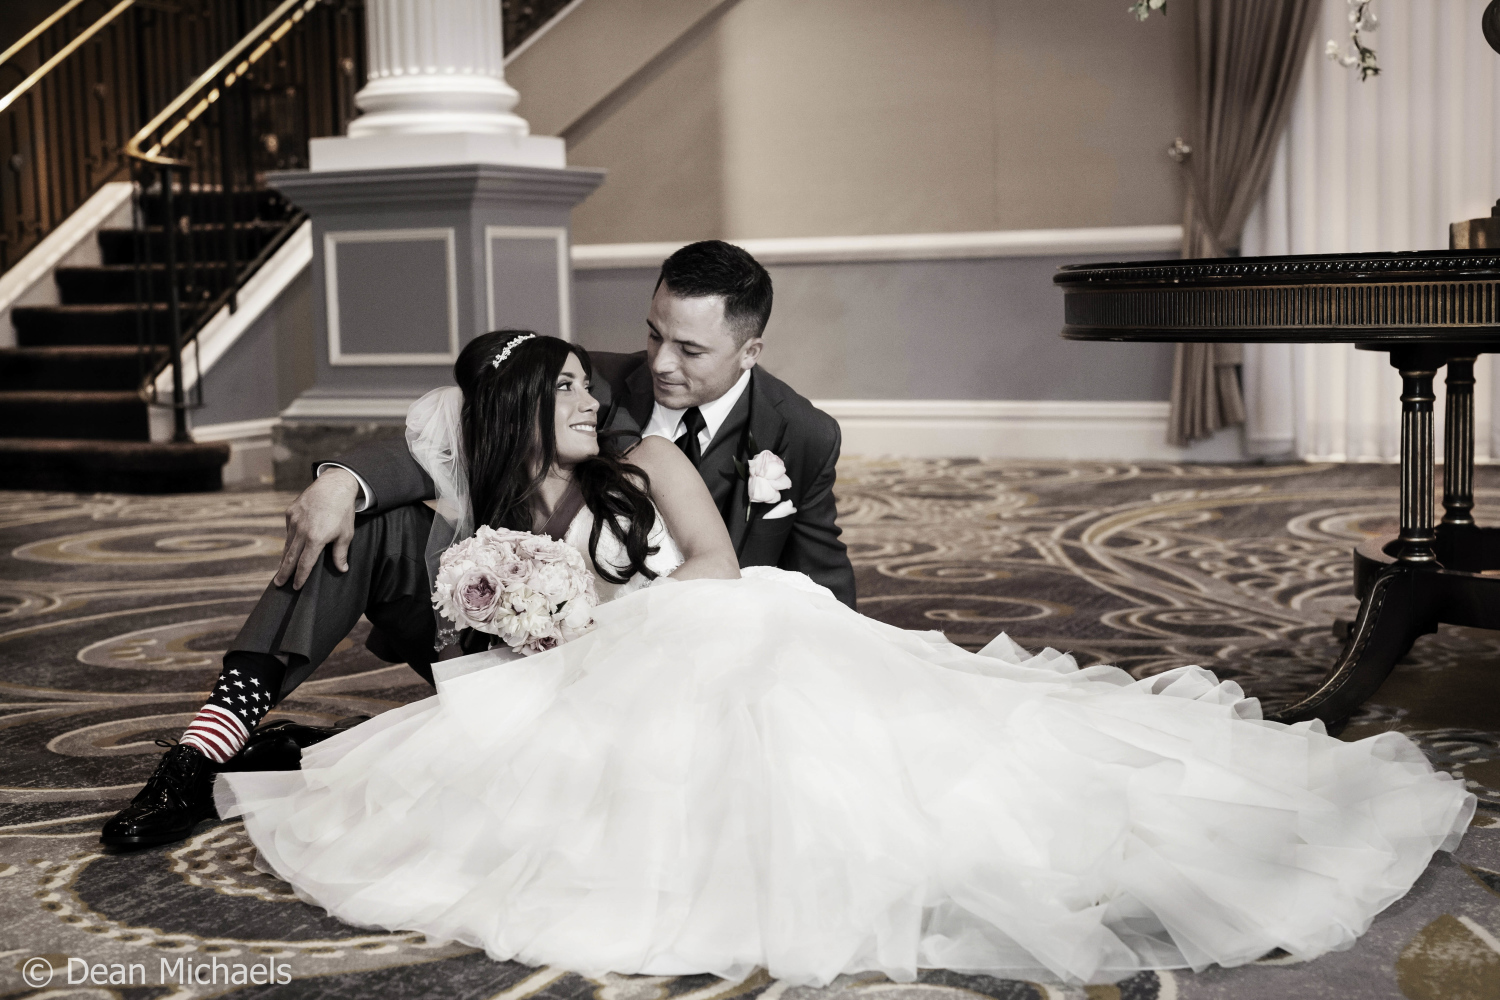 wedding-photographer-gallery-OFF7QHKMODUJ.jpg